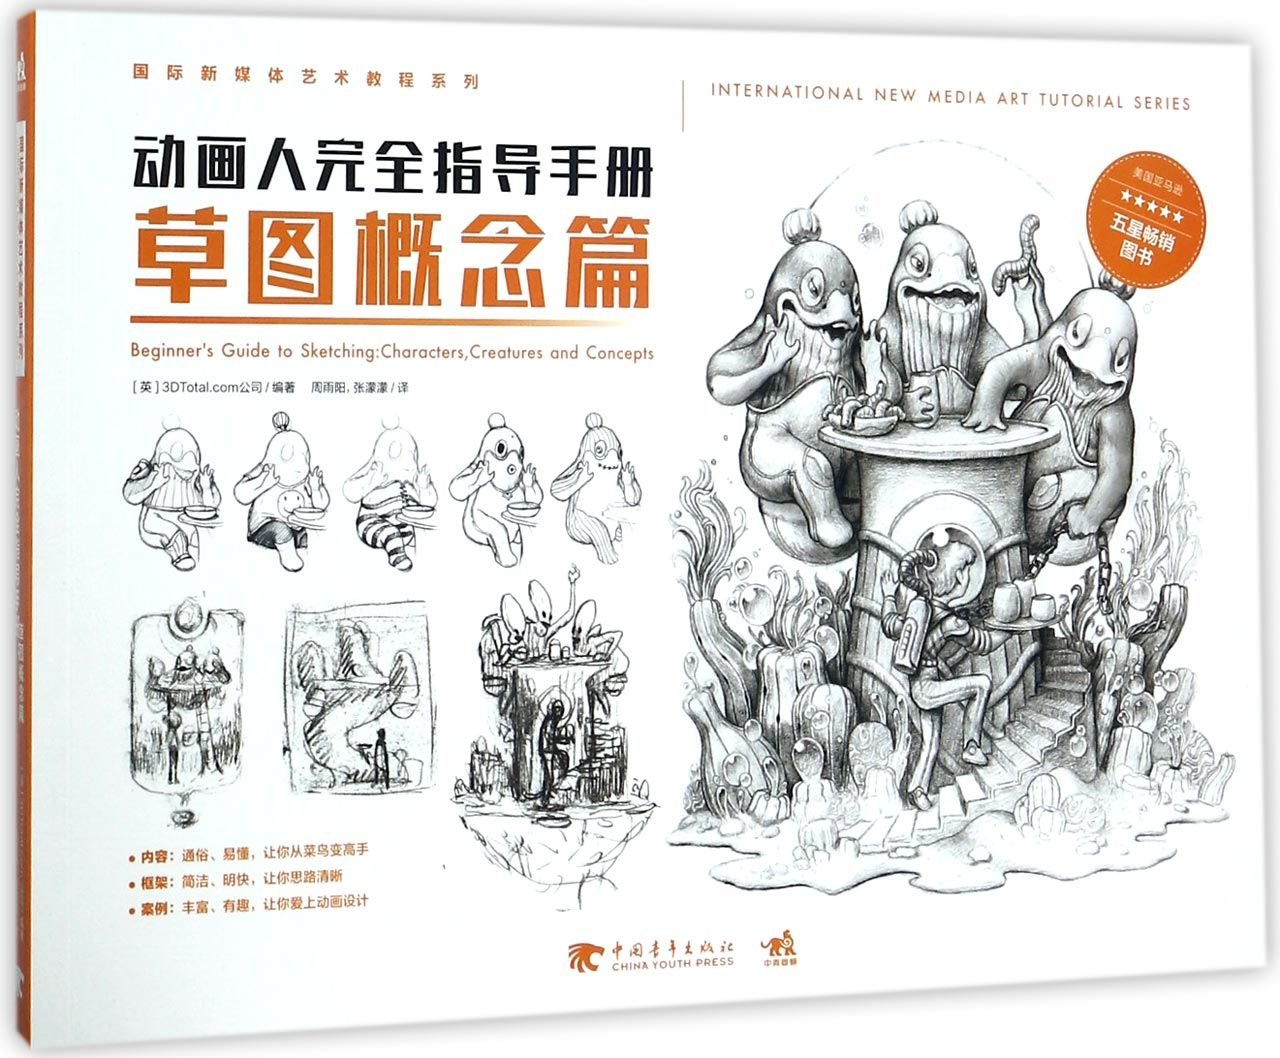 Beginner's Guide to Sketching: Characters, Creatures and Concepts (Chinese Edition) ebook